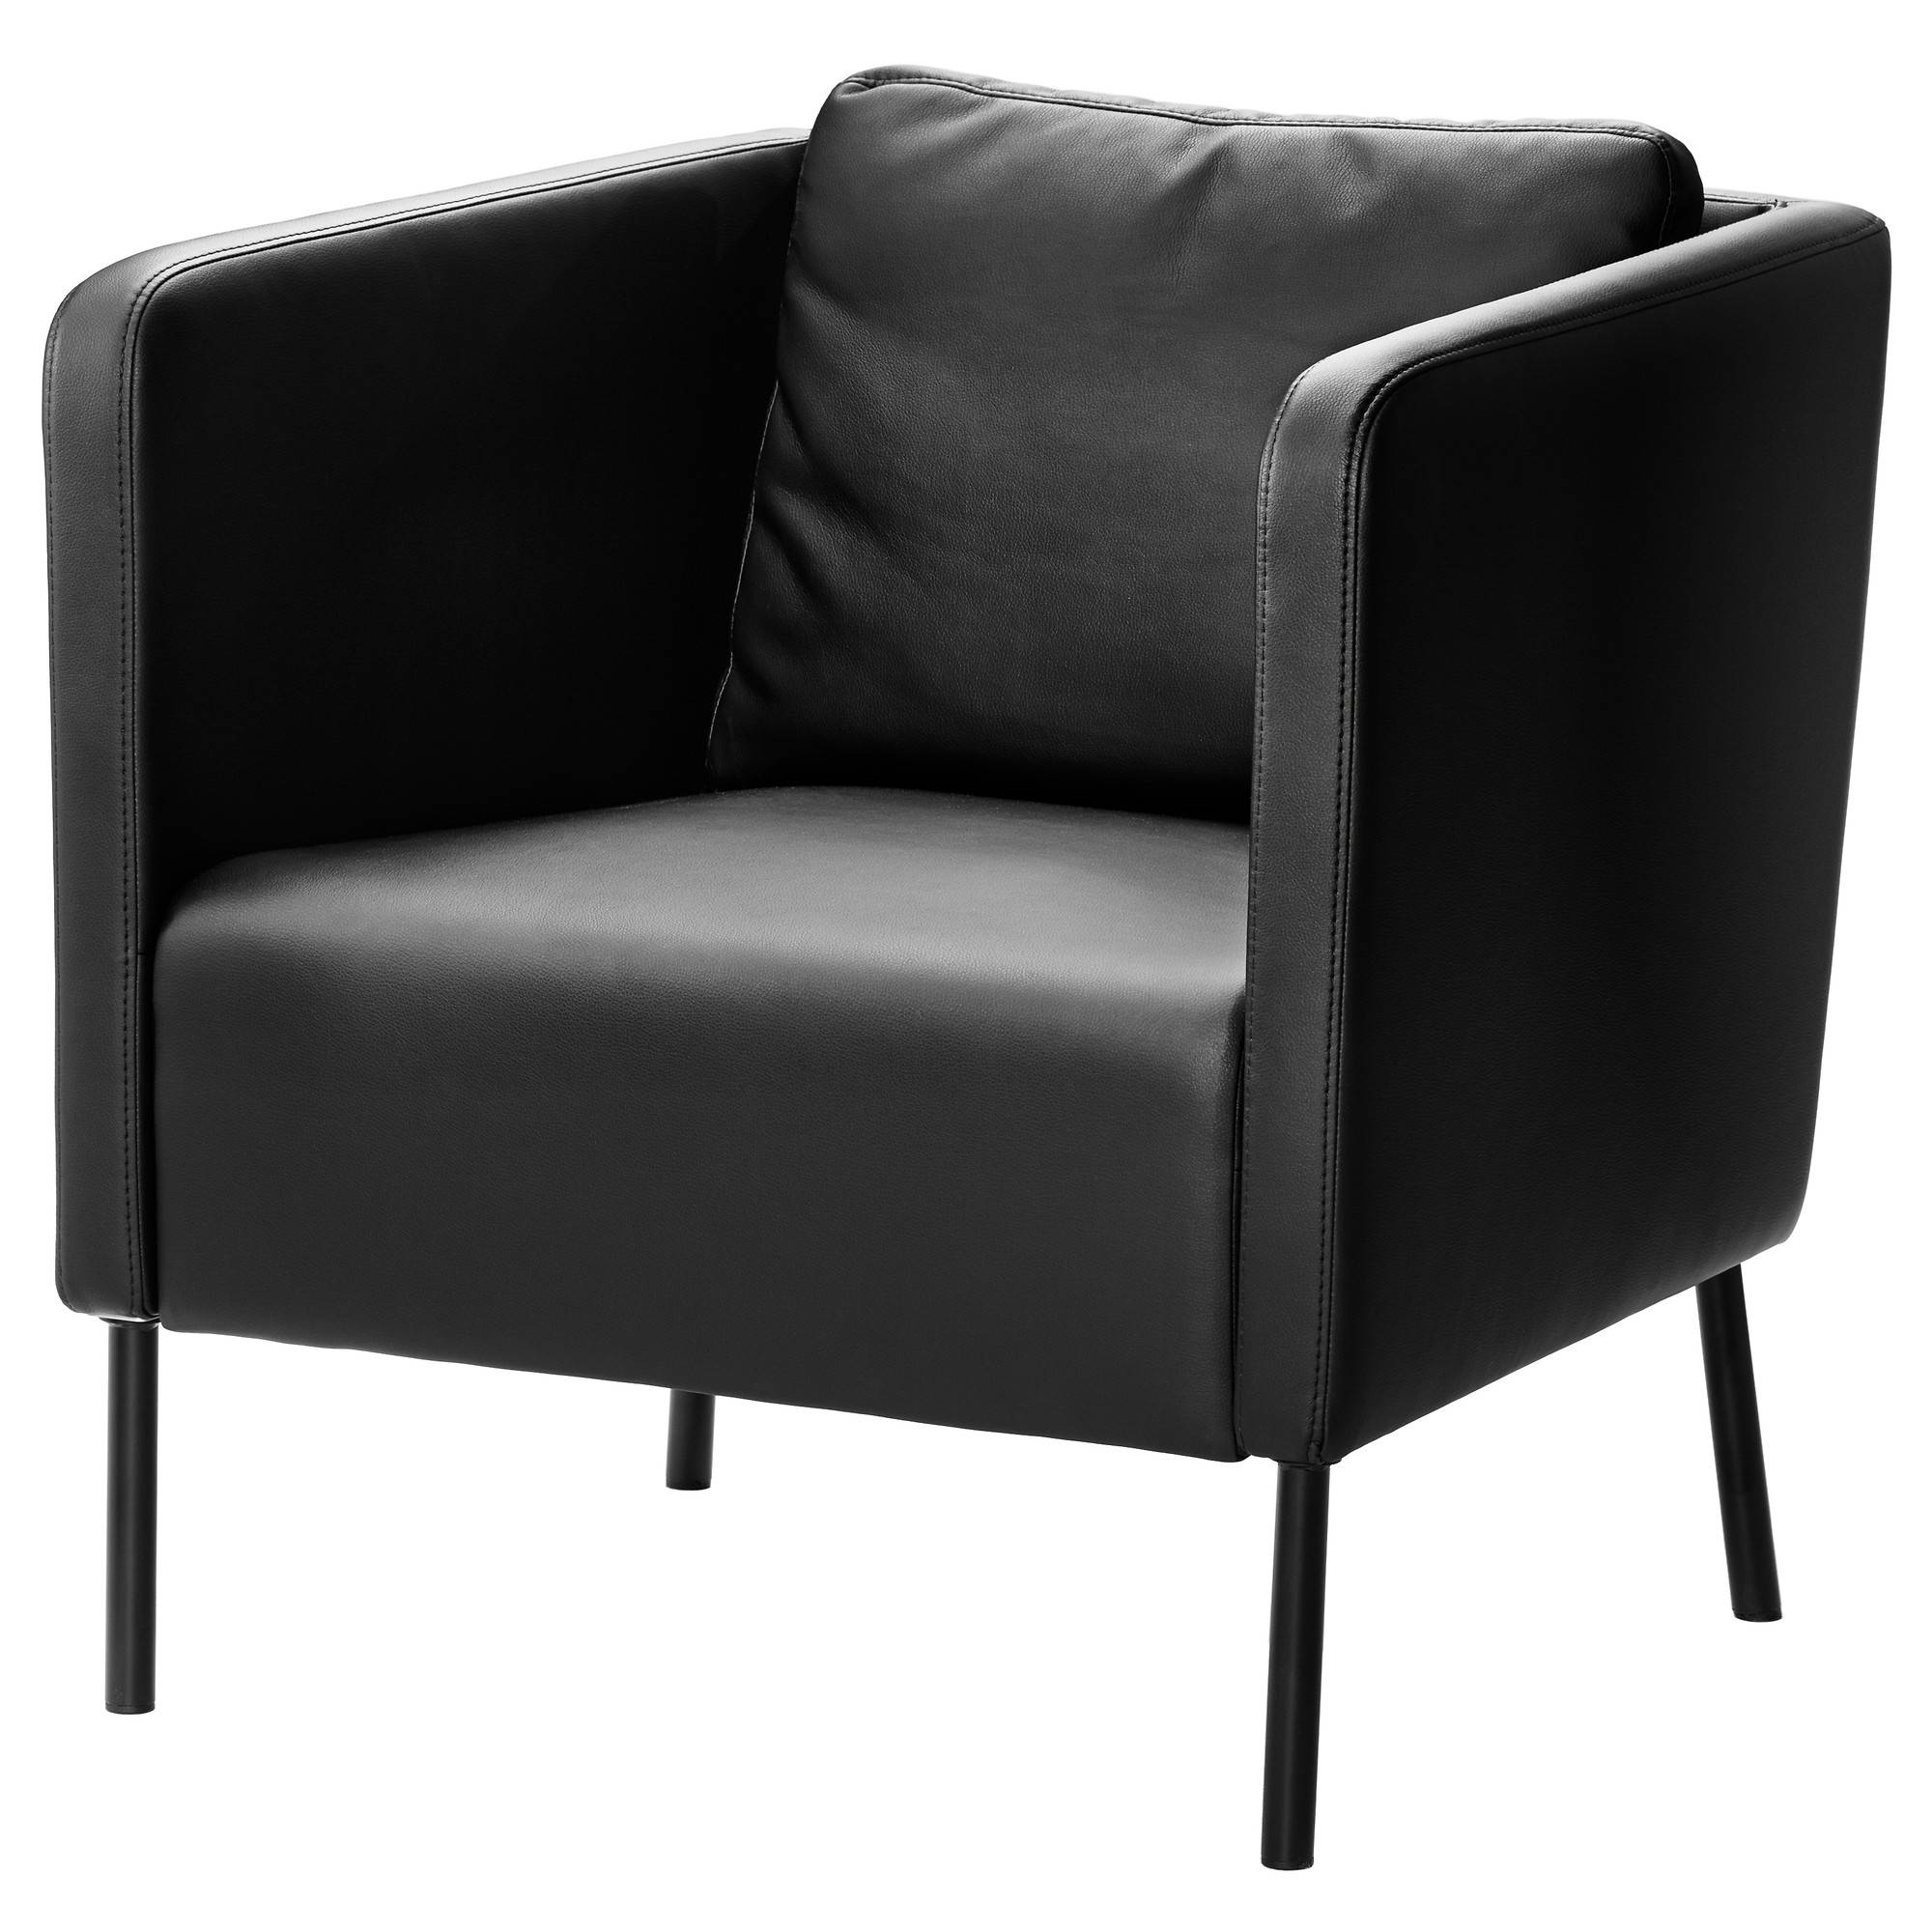 Sofas Center : Ikea Sofa Chair Of Ikeas New And Chairs How To Keep for Comfortable Sofas and Chairs (Image 25 of 30)